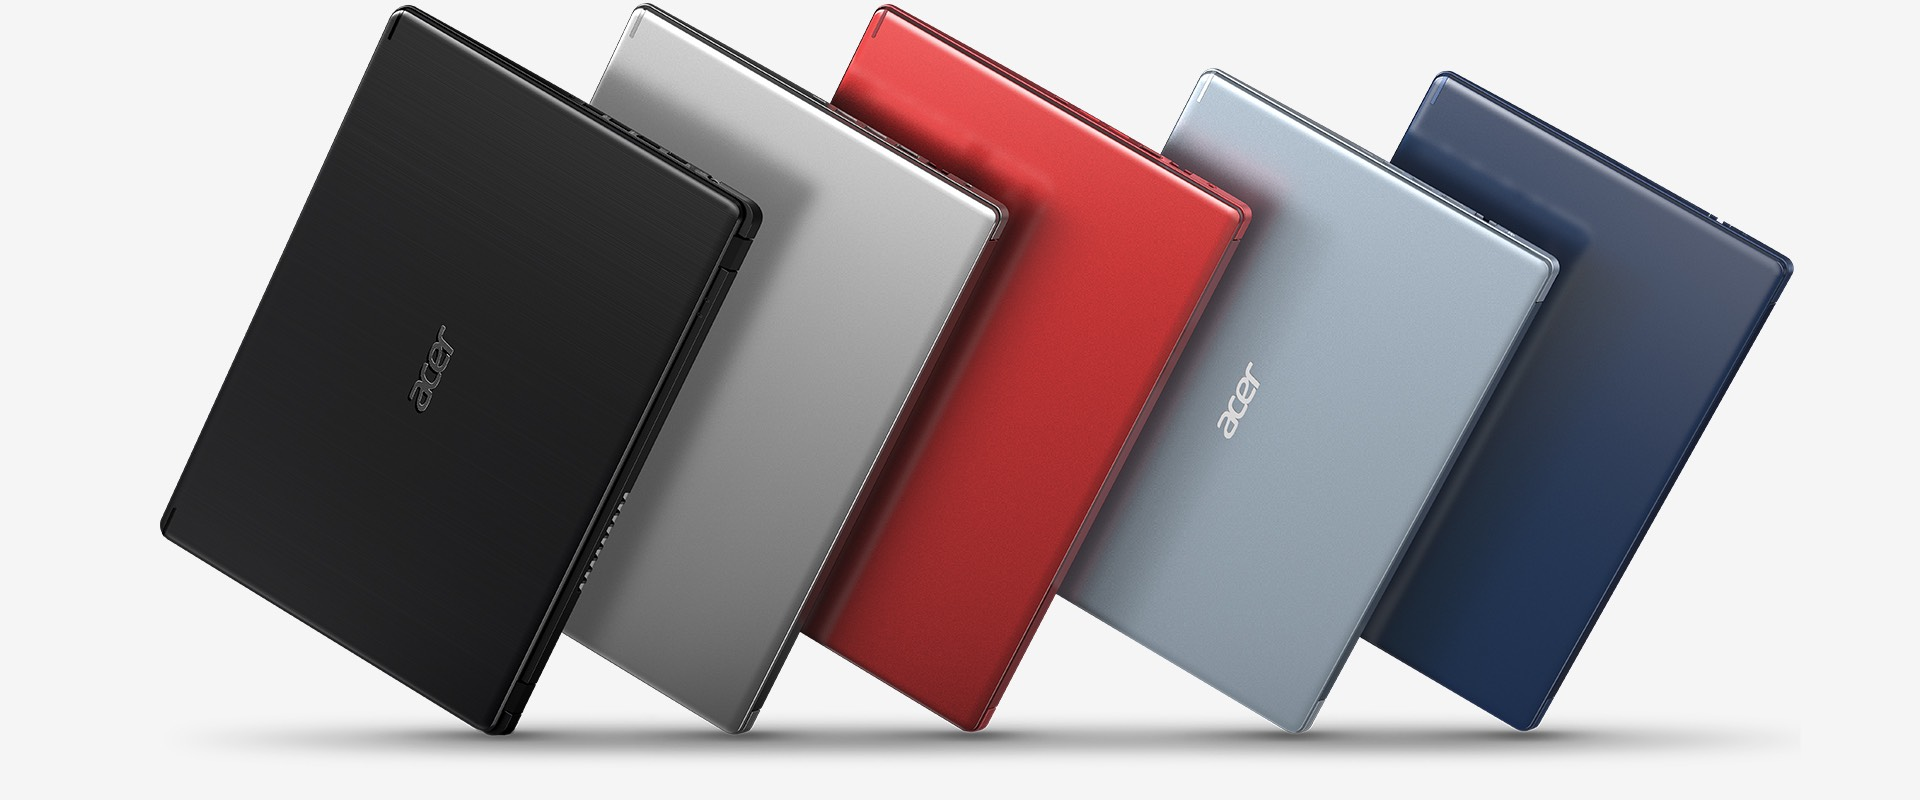 You can choose different colors of Aspire 5 notebooks - black, silver, red, gray and blue.